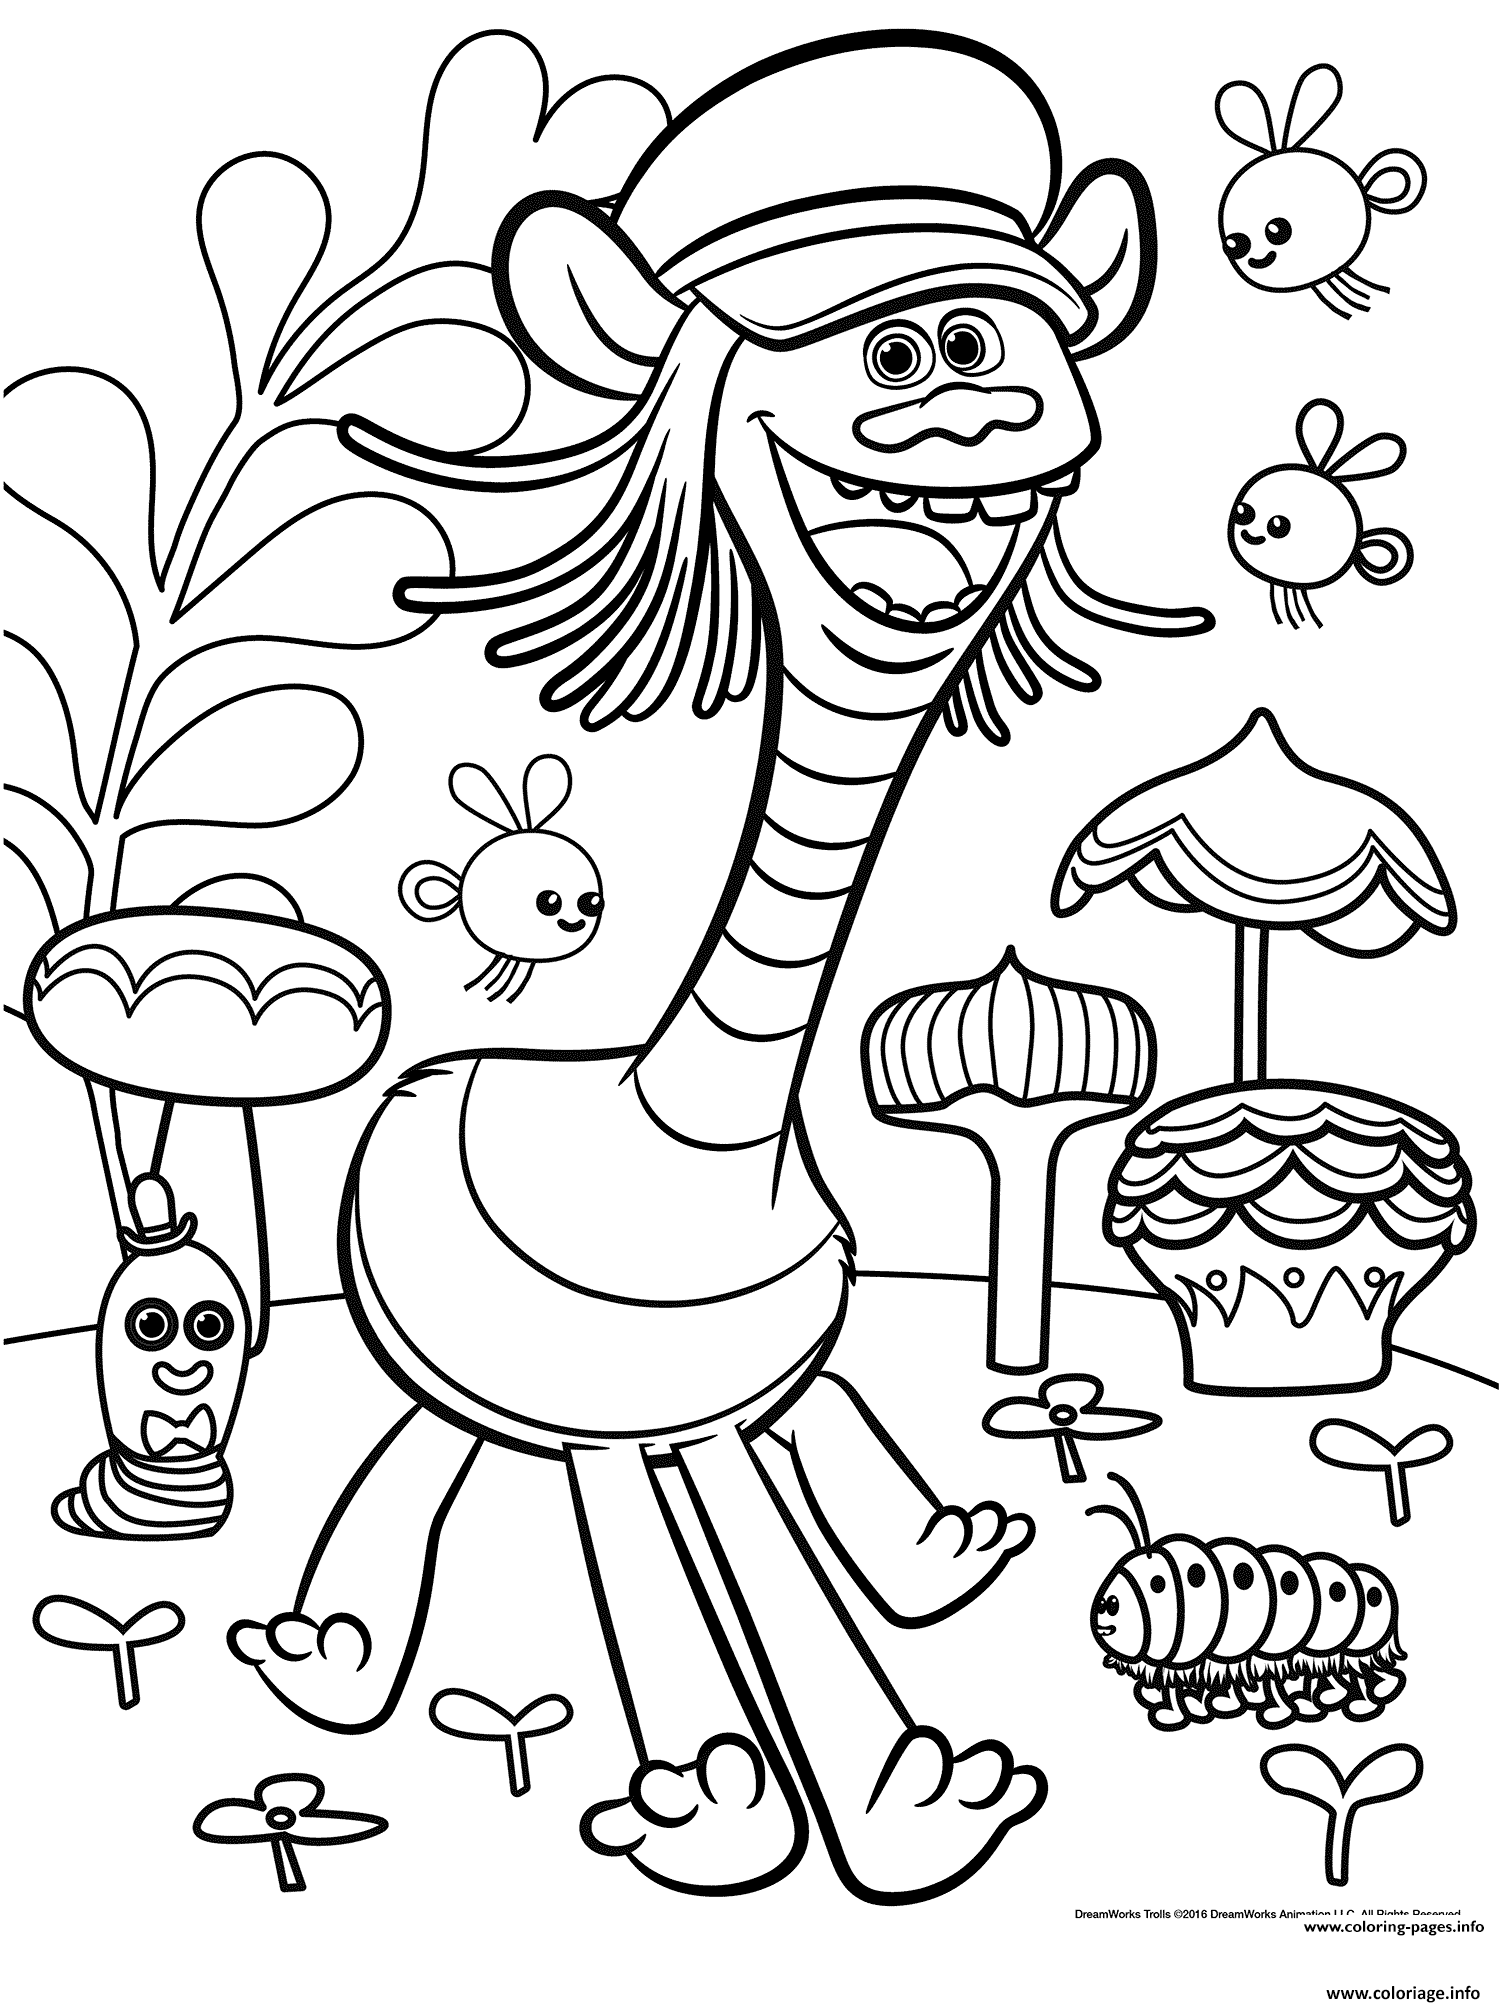 Coloriage Cooper From Trolls With Insects Dessin à Imprimer